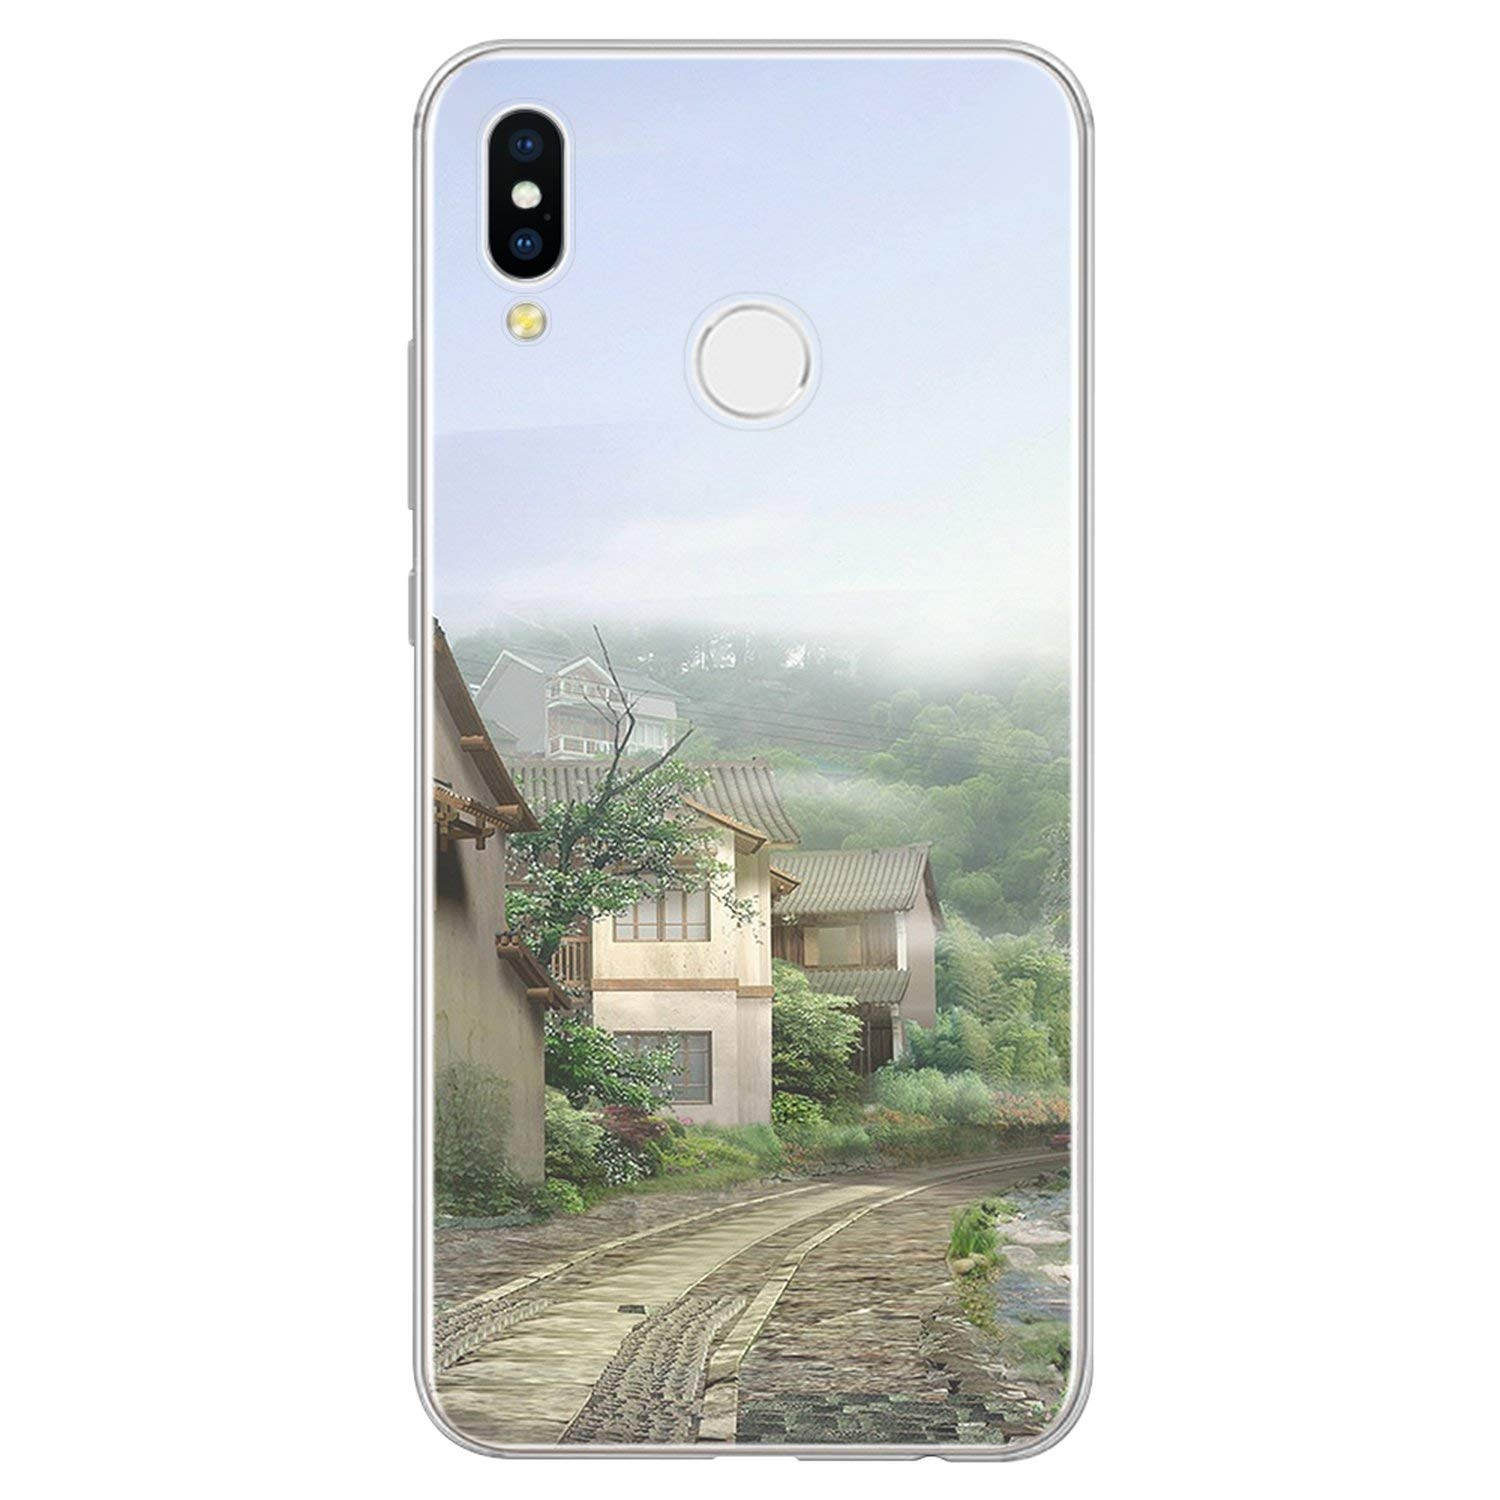 Amazon.com: Natural Scenery for Huawei P8 P9 P10 P20 P30 Pro ...